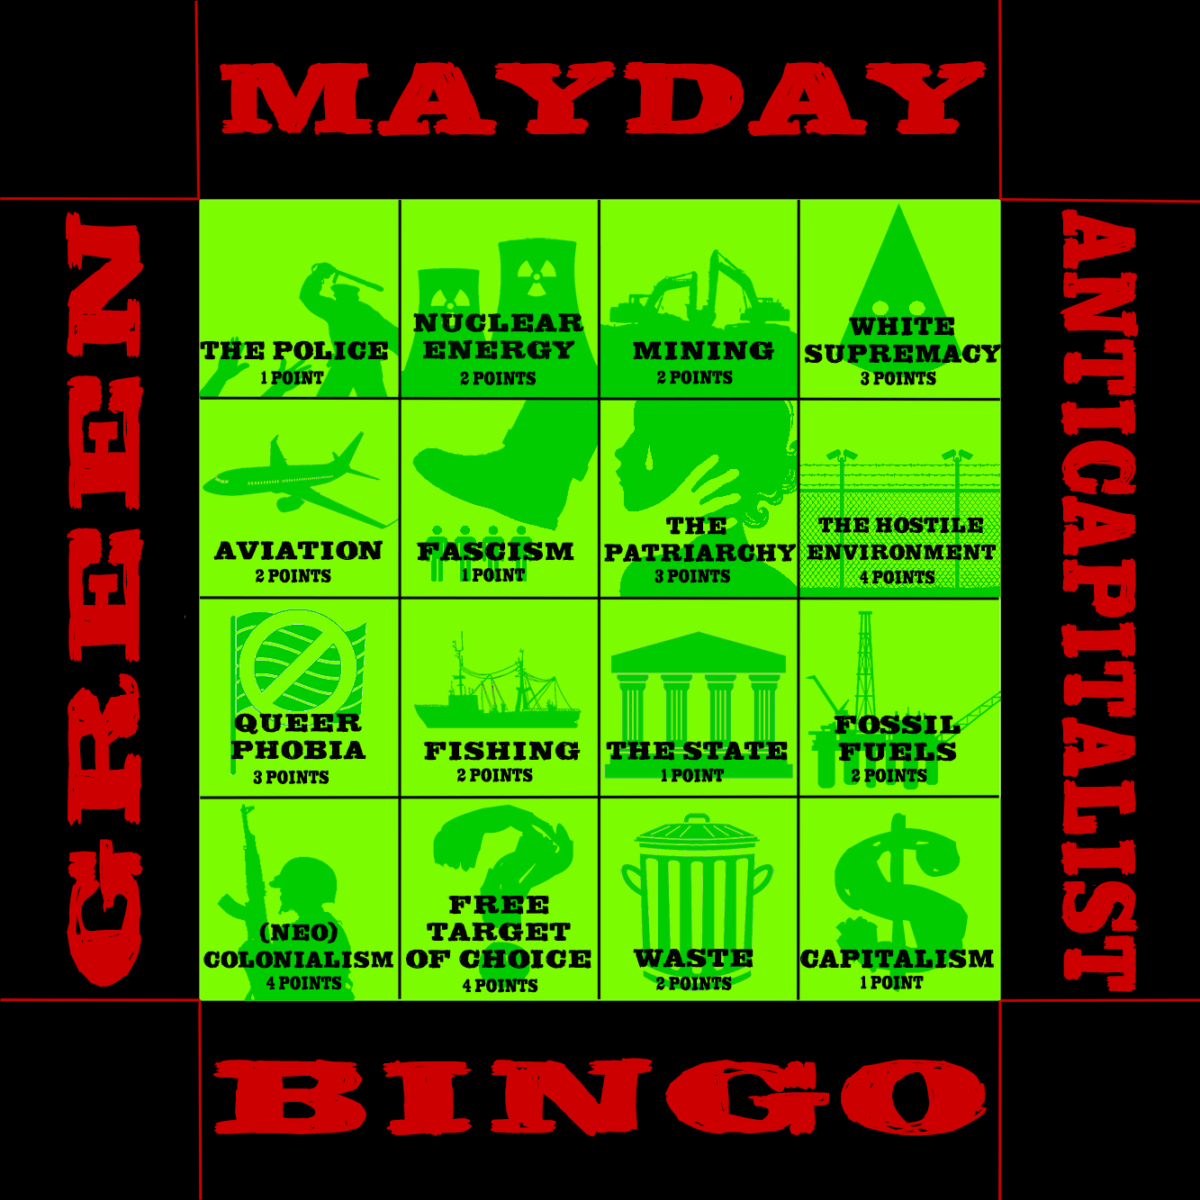 Further advice on how to participate in the Mayday Bingo